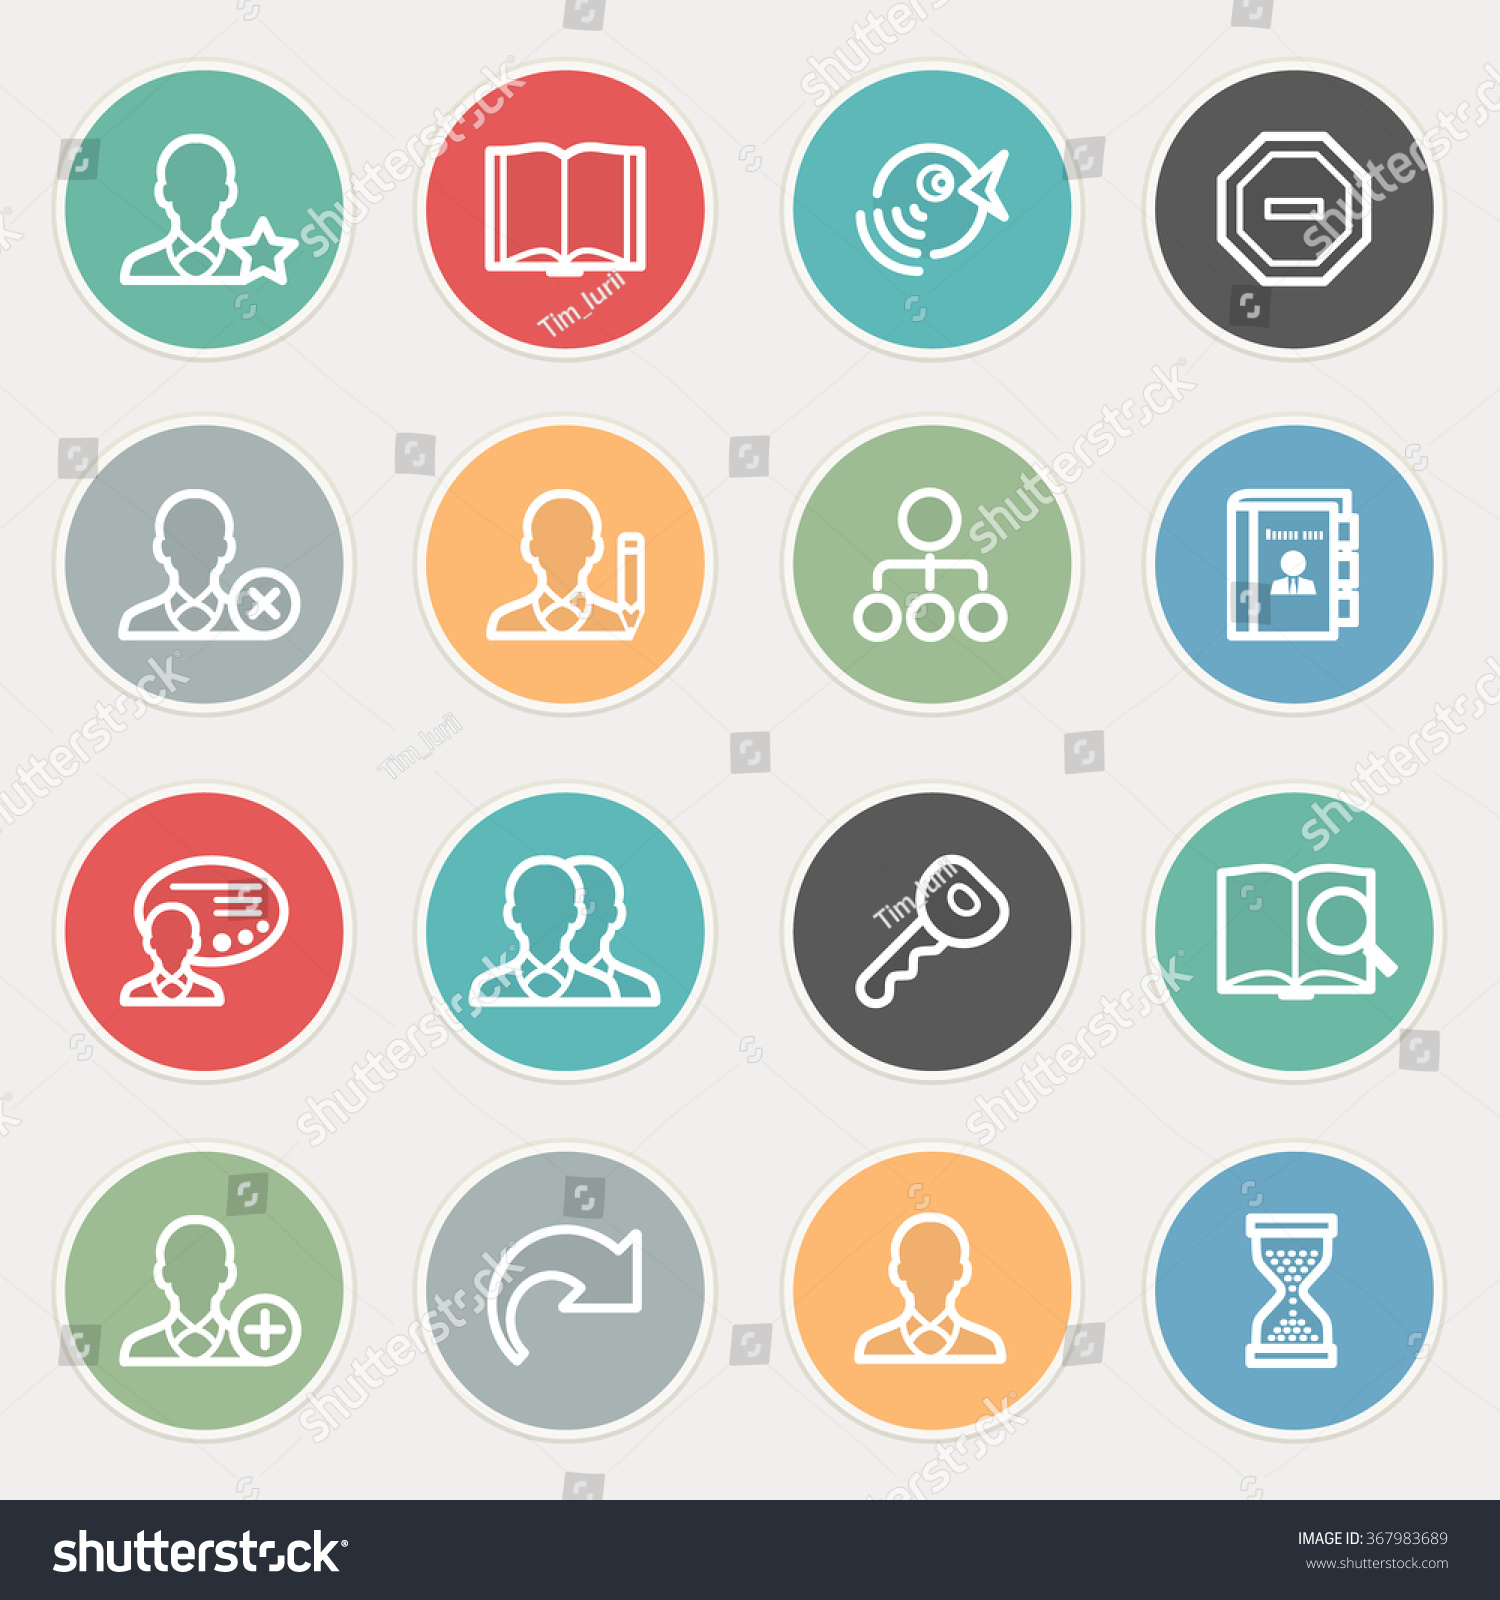 Users Flat Contour Icons On Color Stock Vector 367983689 ...